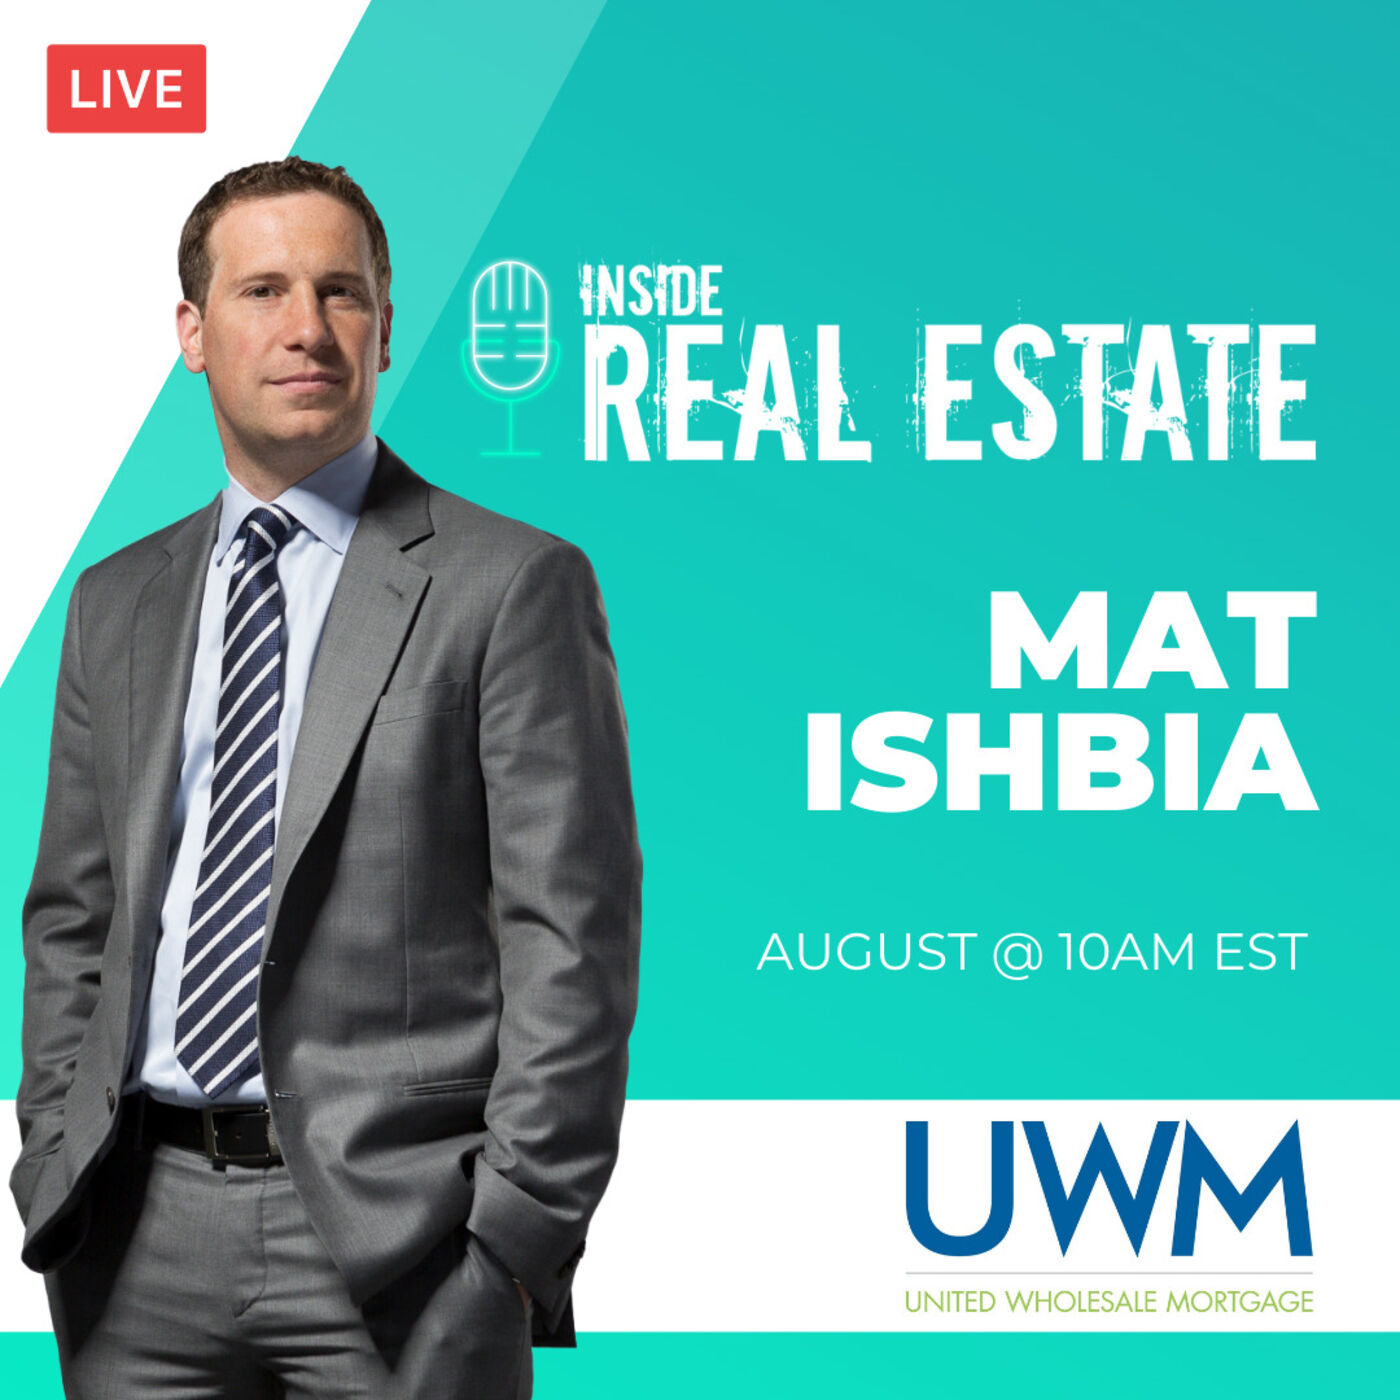 Mat Ishbia, UWM - 2nd Quarter Results, Stock Price, Turn Times, and So Much More